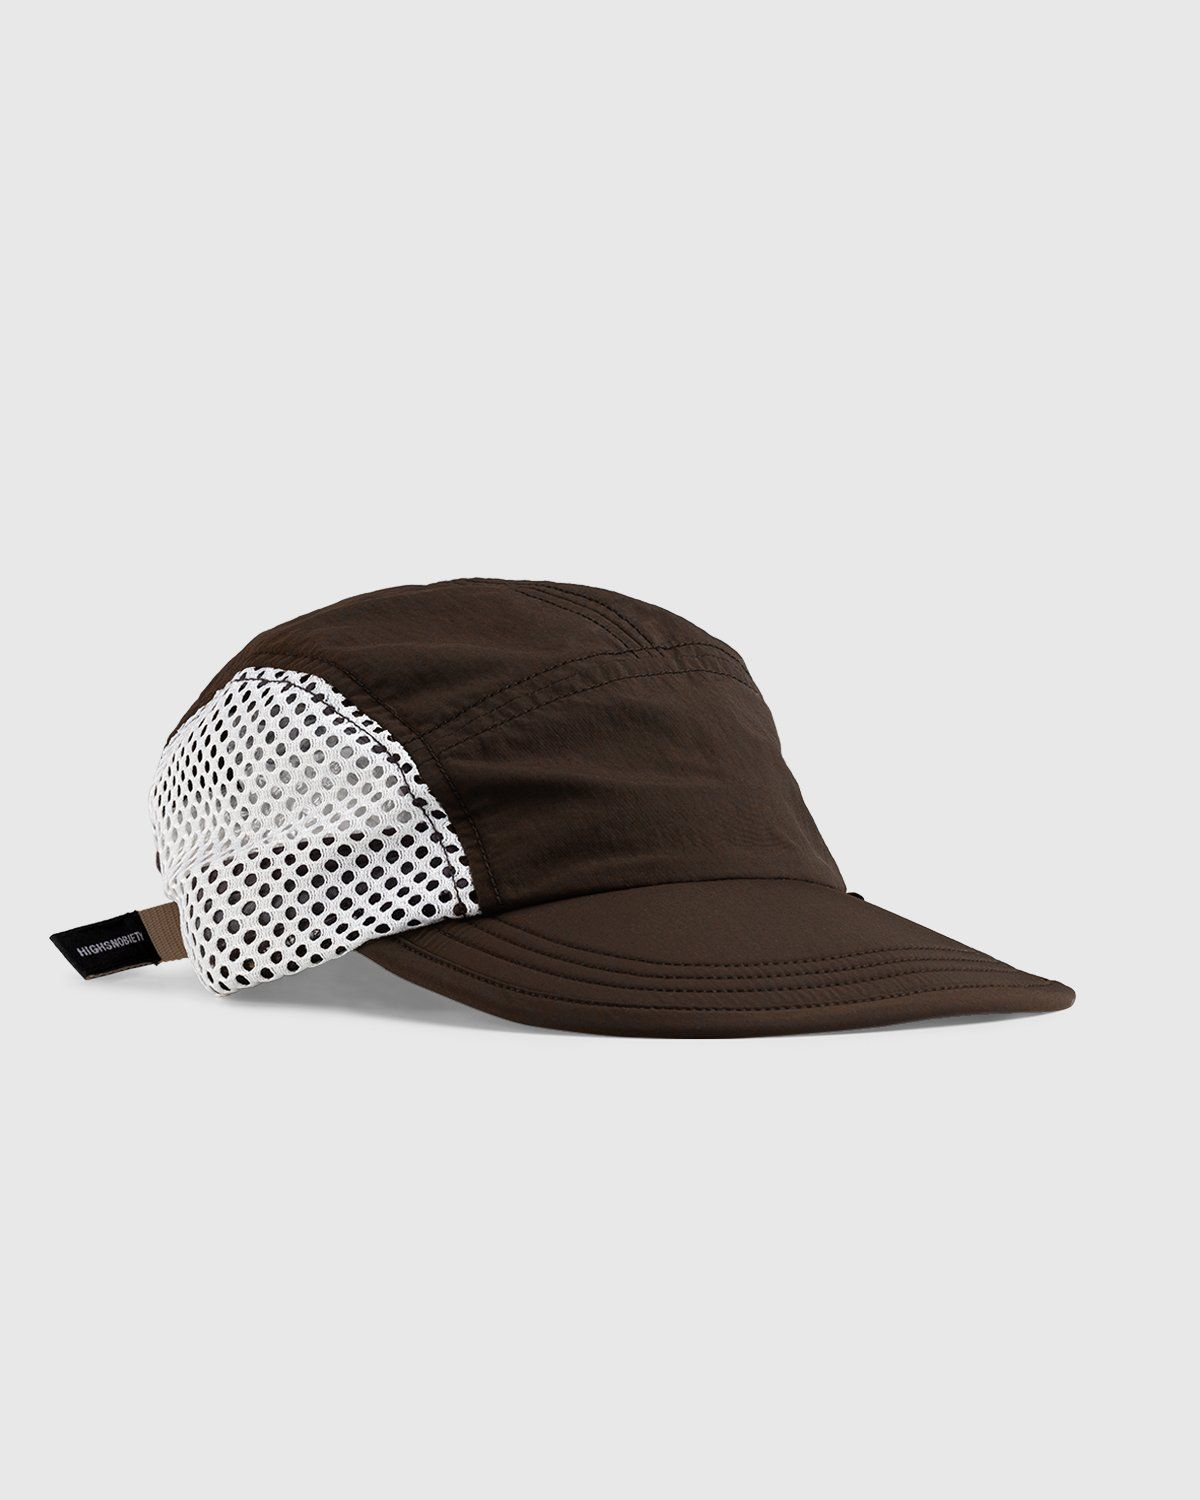 Gramicci for Highsnobiety – Cap Brown - Image 1